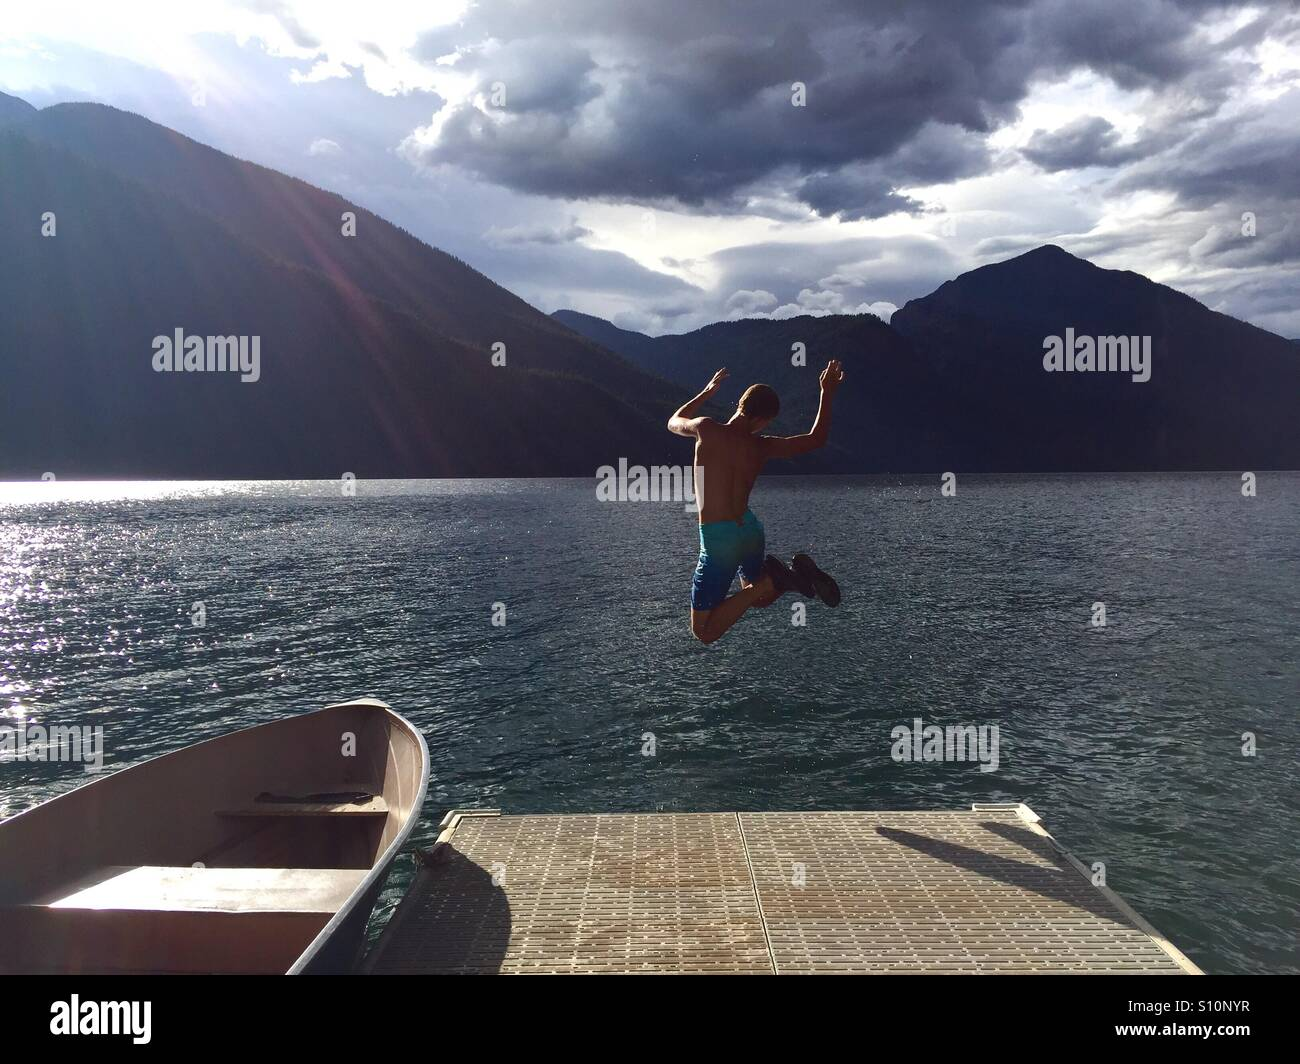 Teen boy leaping off dock into lake. - Stock Image